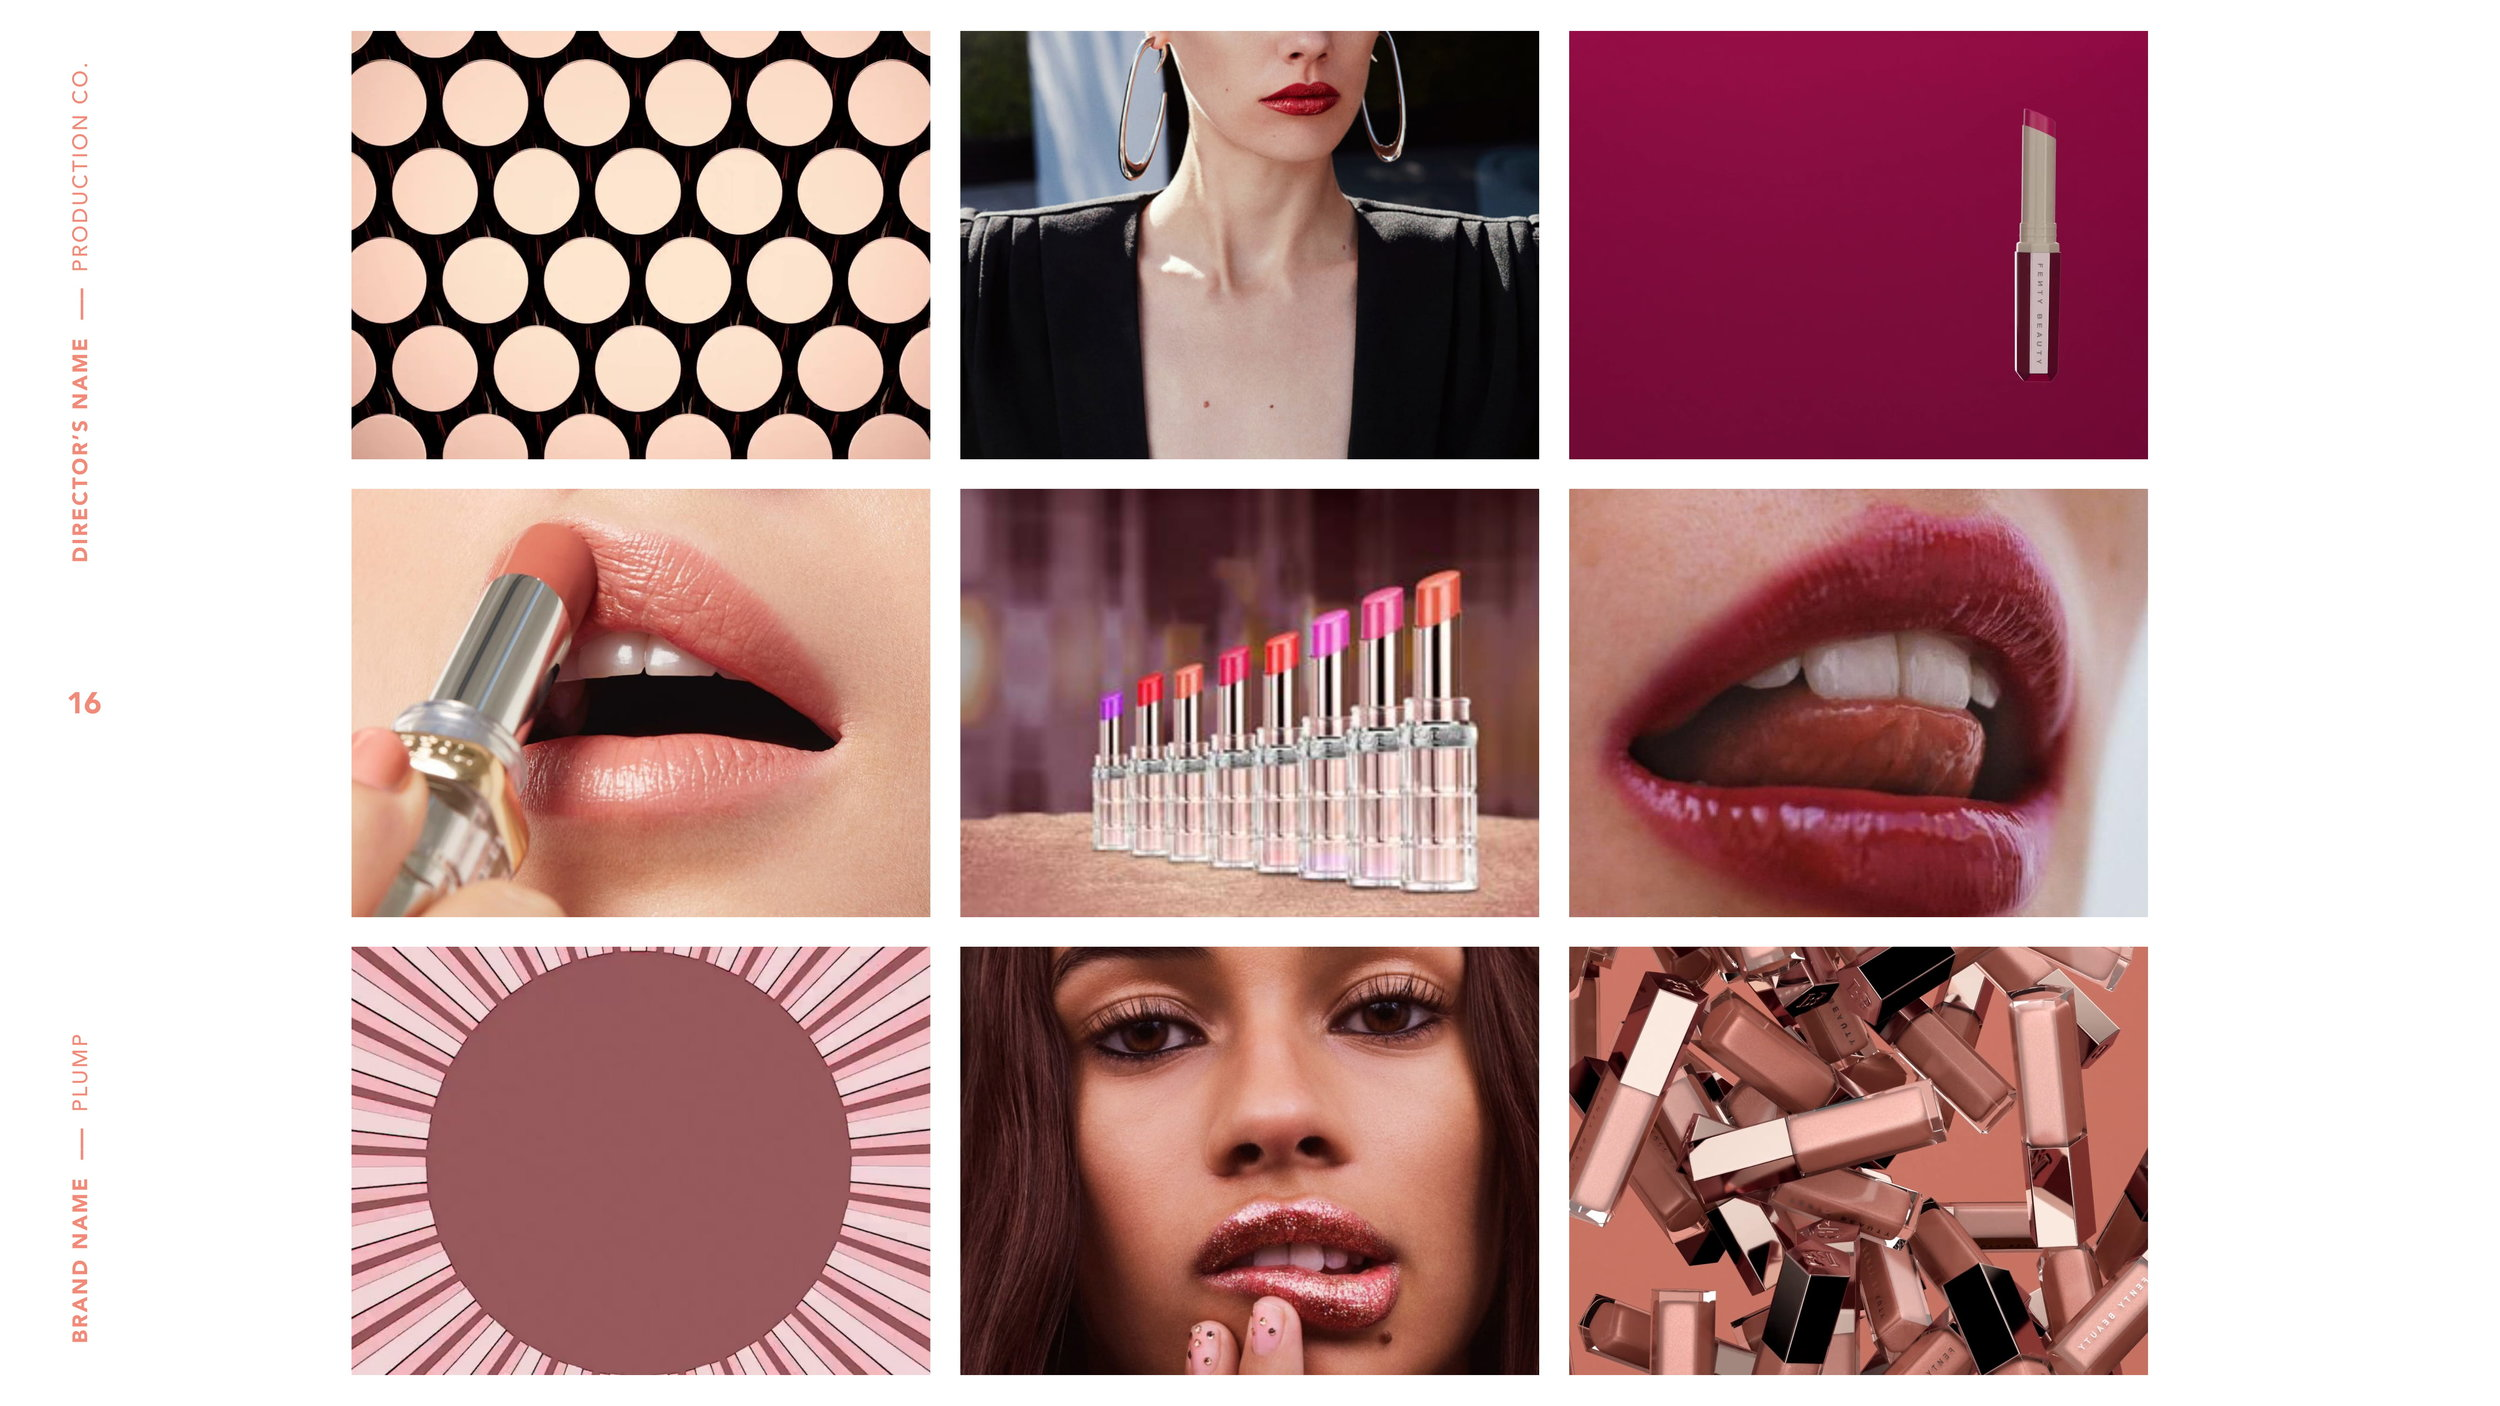 Lips_BLANK_Treatment_00-16.jpg